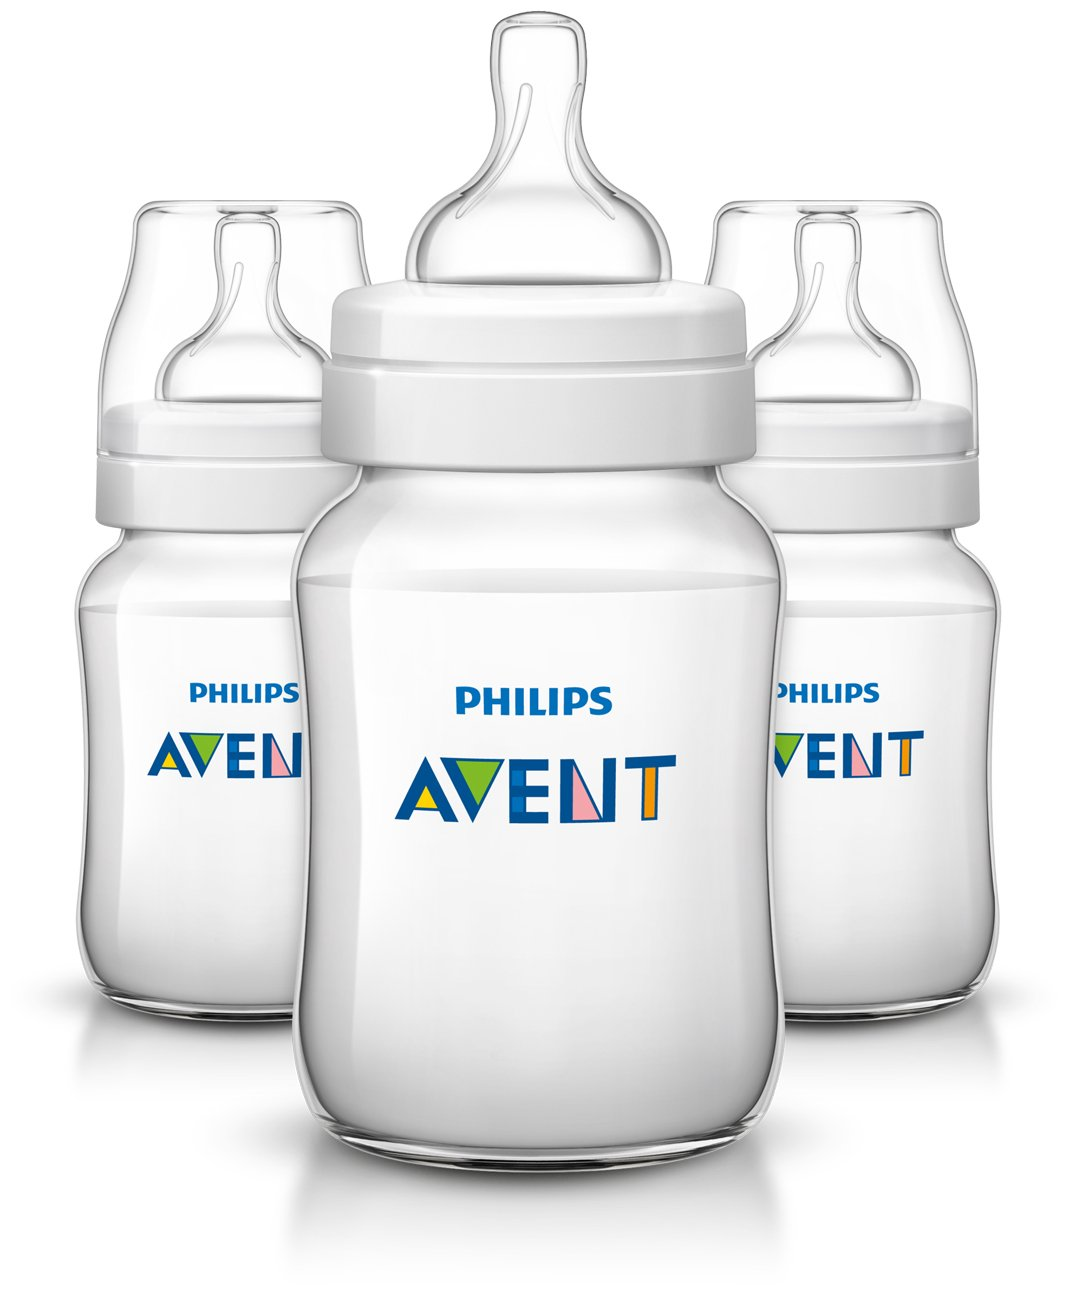 philips avent fast bottle warmer instructions